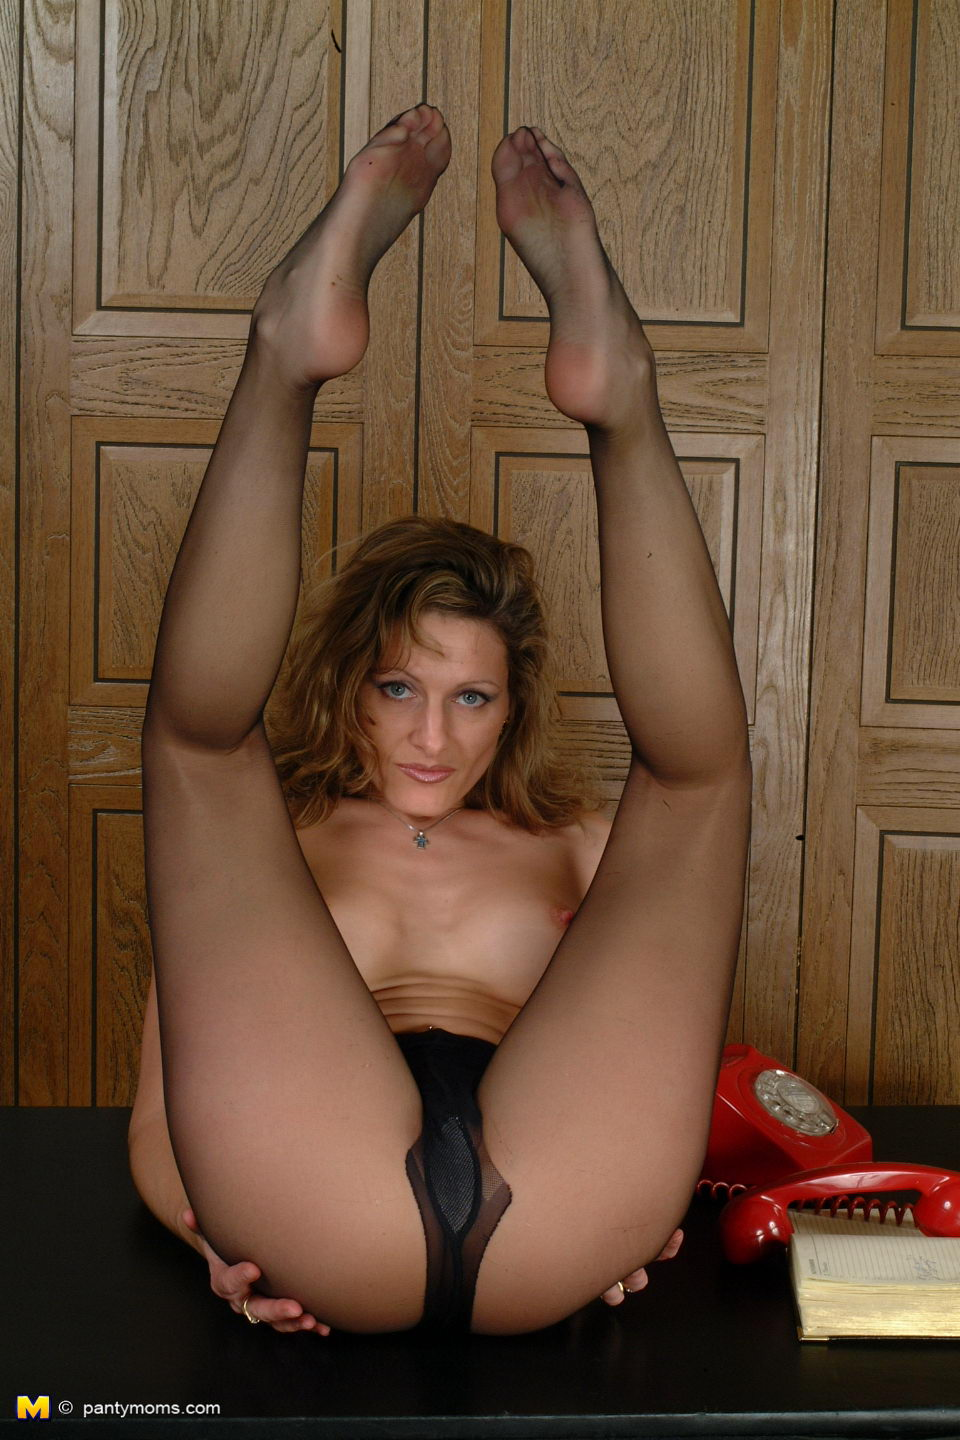 Pantyhose matutres free galleries consider, that